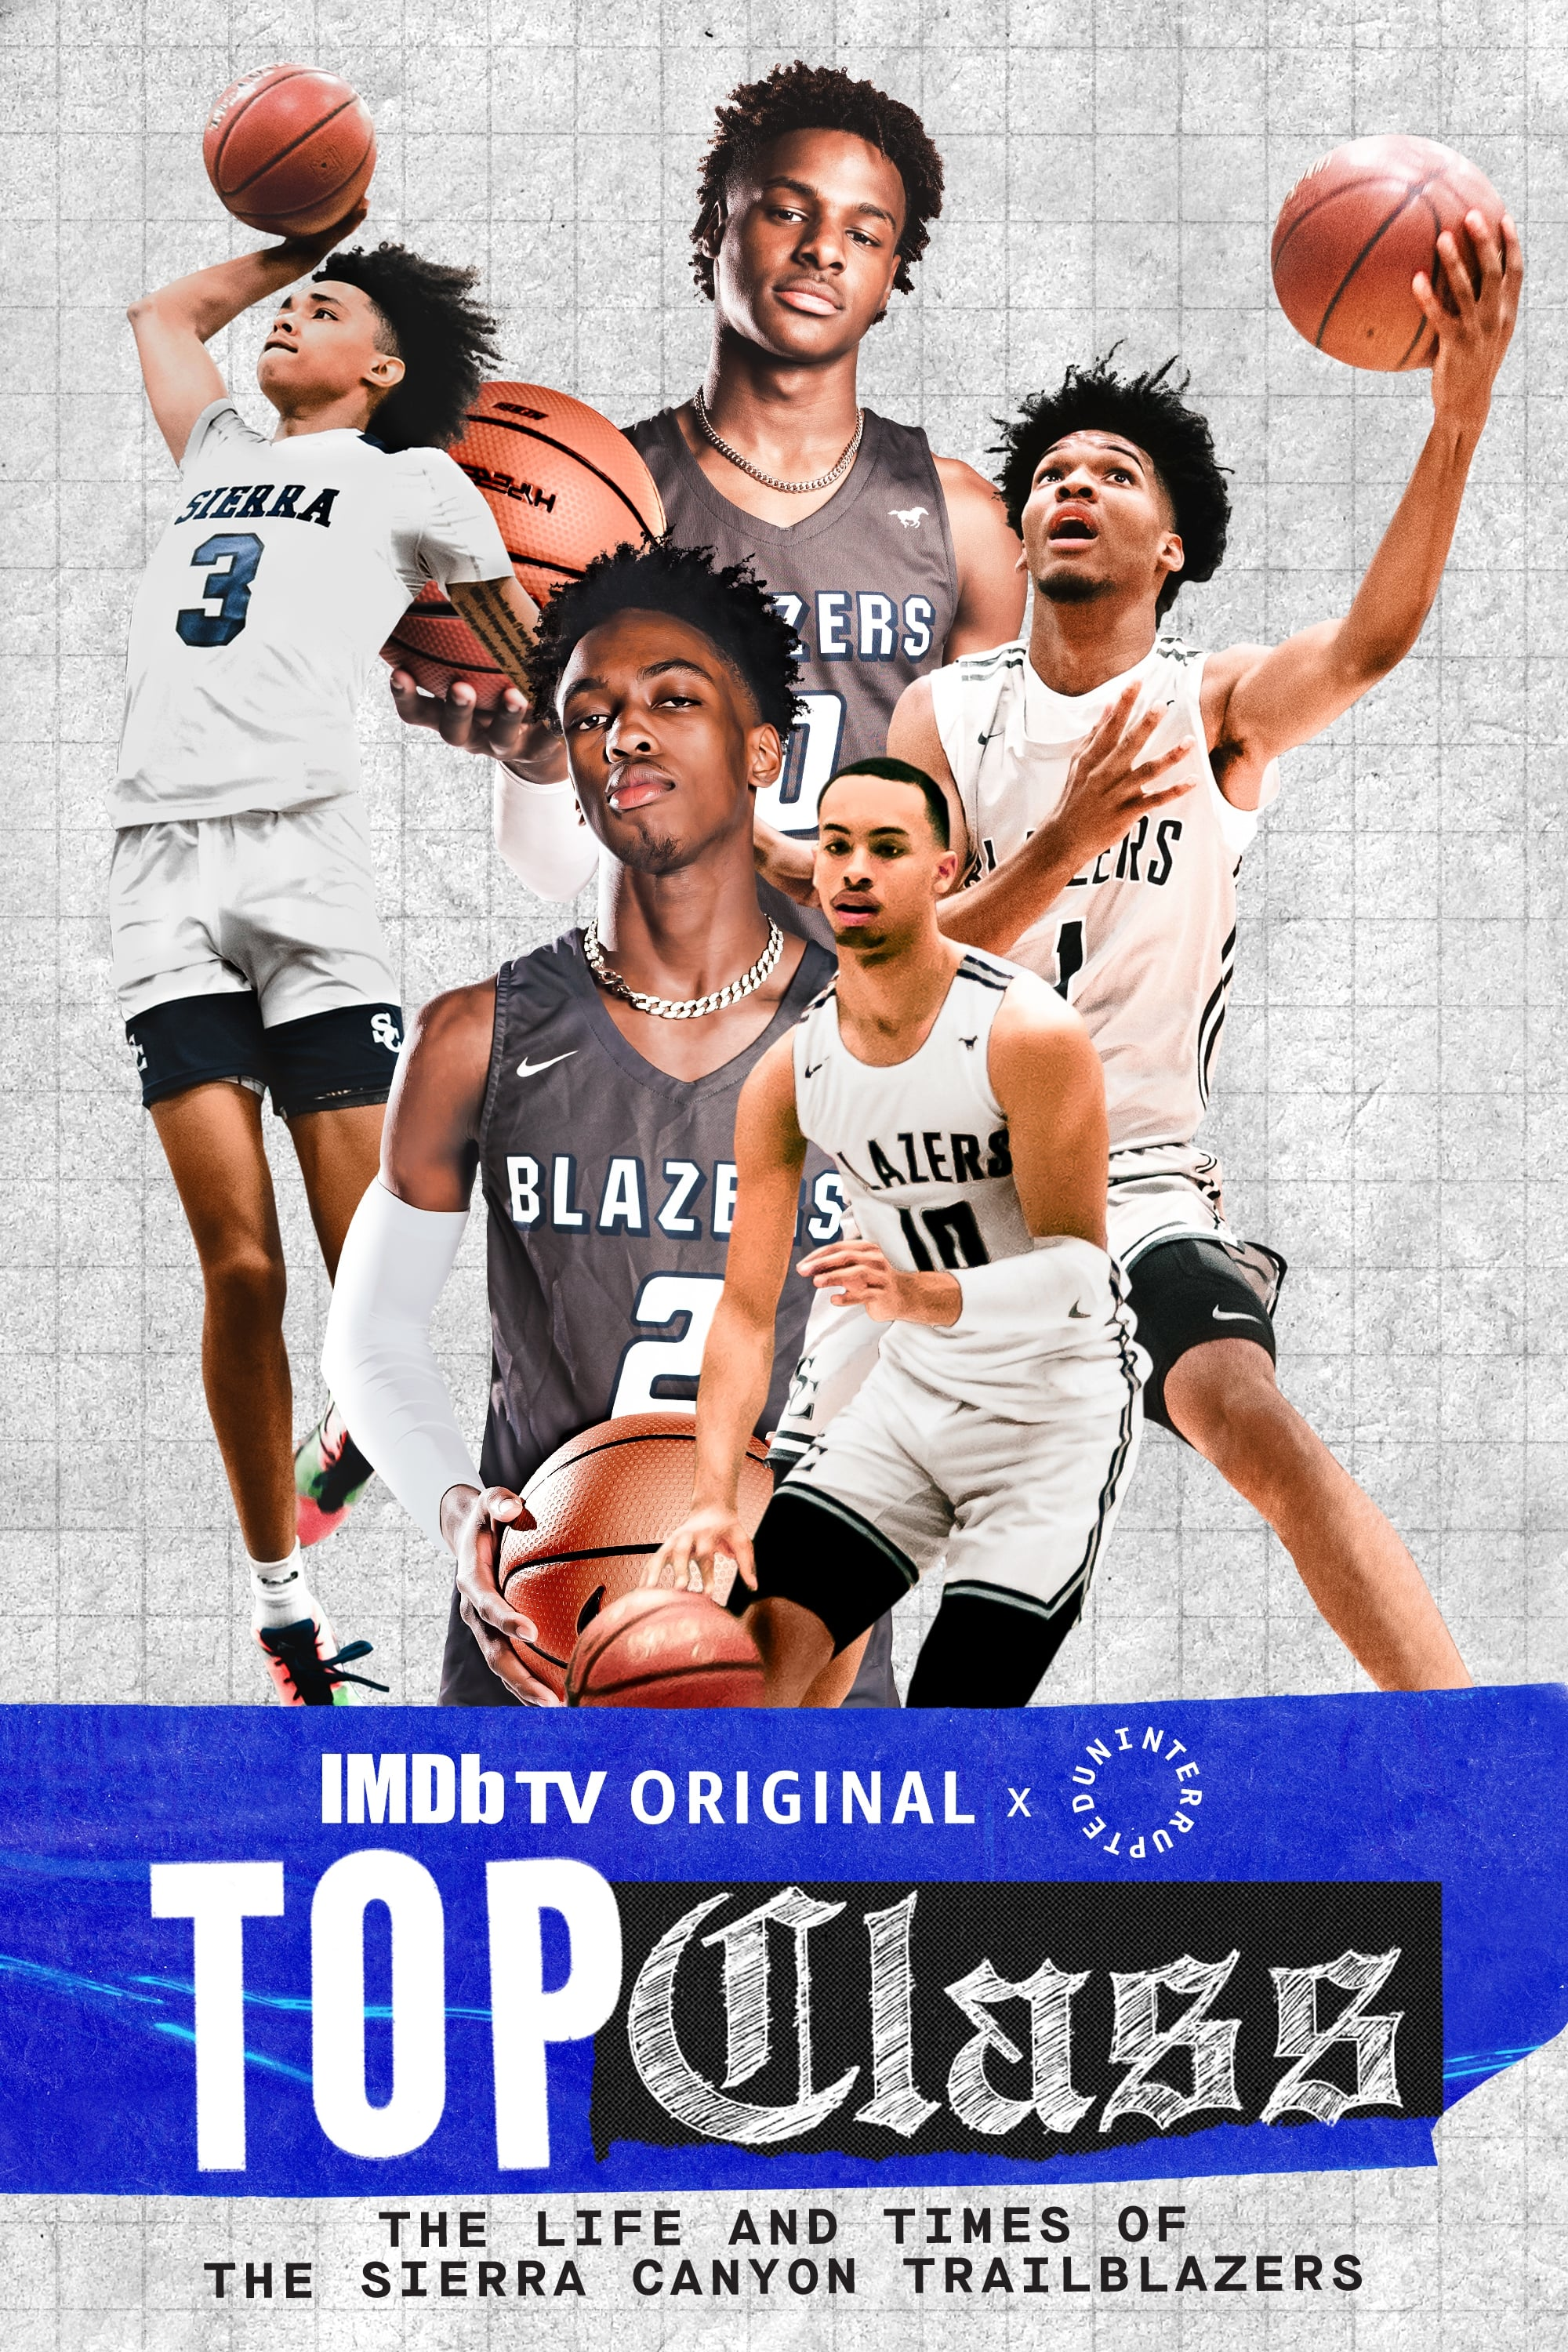 Top Class: The Life and Times of the Sierra Canyon Trailblazers TV Shows About Sports